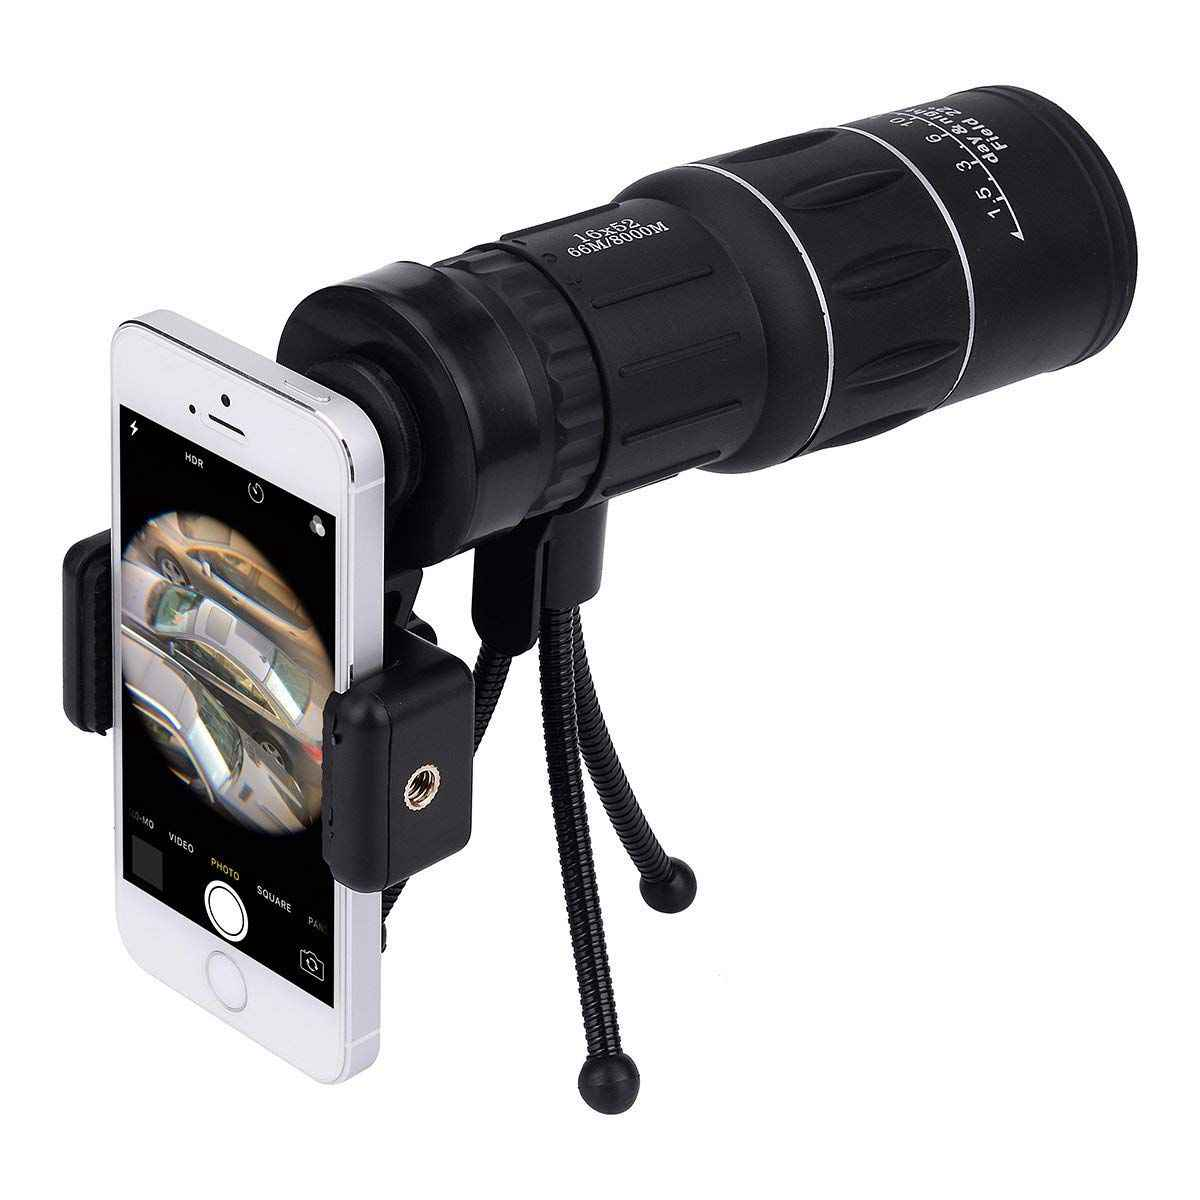 16x52 Dual Focus Monocular Telescope, Waterproof Spotting Scopes, HD Wide View, with Tripod/Universal Cell Phone Adapters for